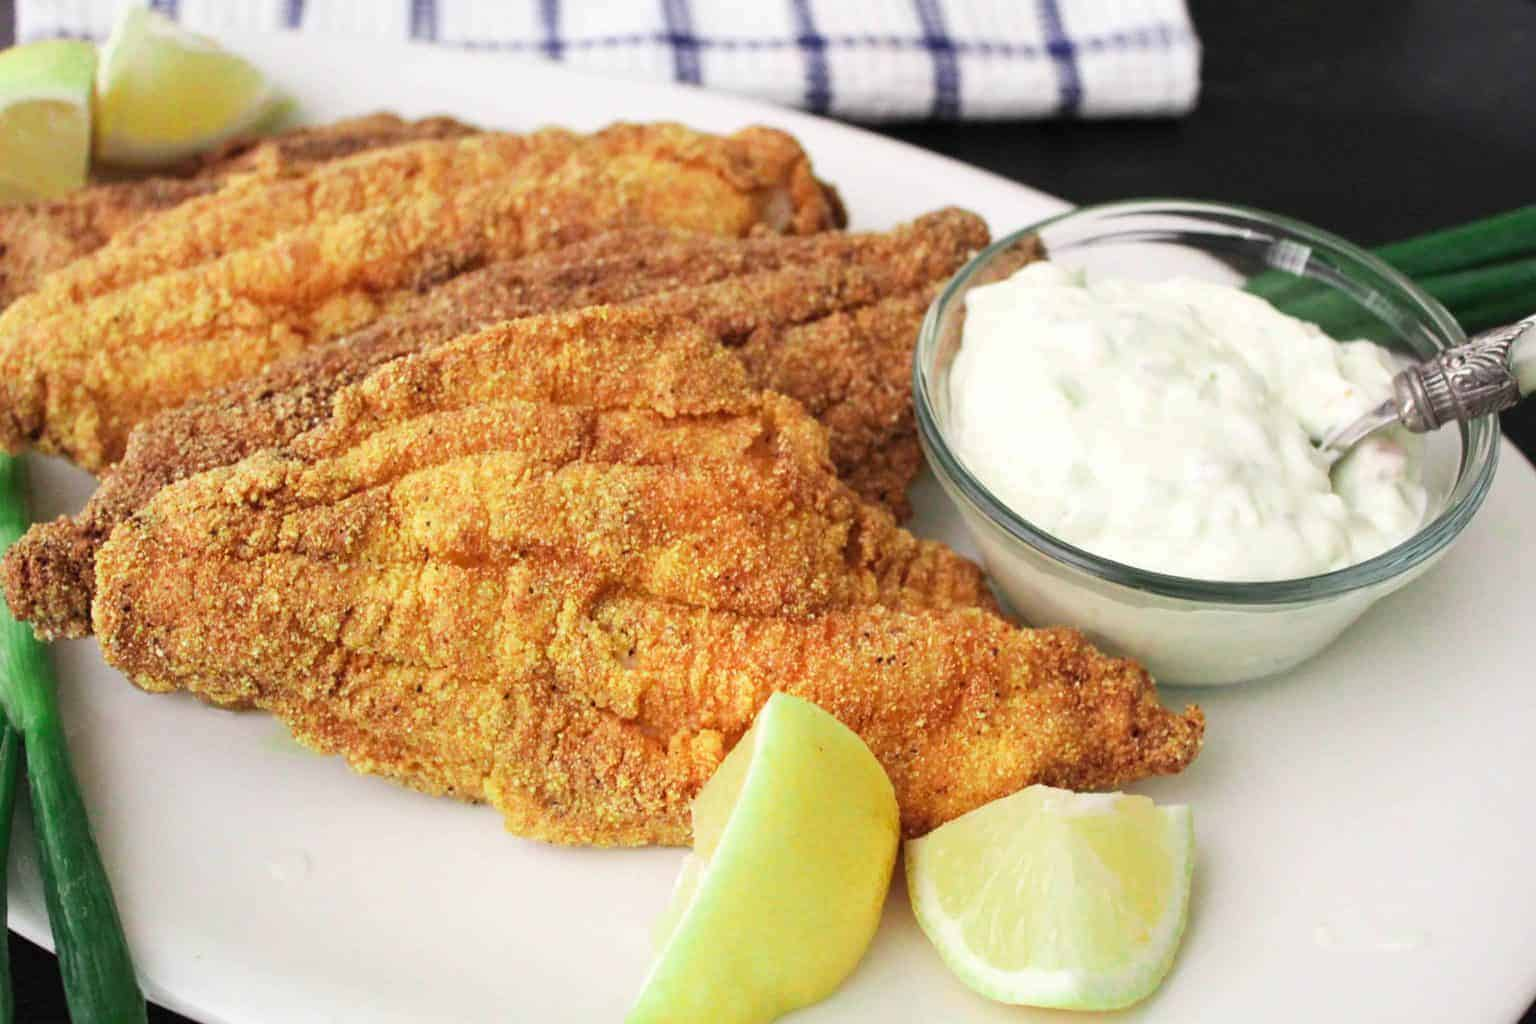 Fried Catfish Filets with lemon and tartar sauce on white plate